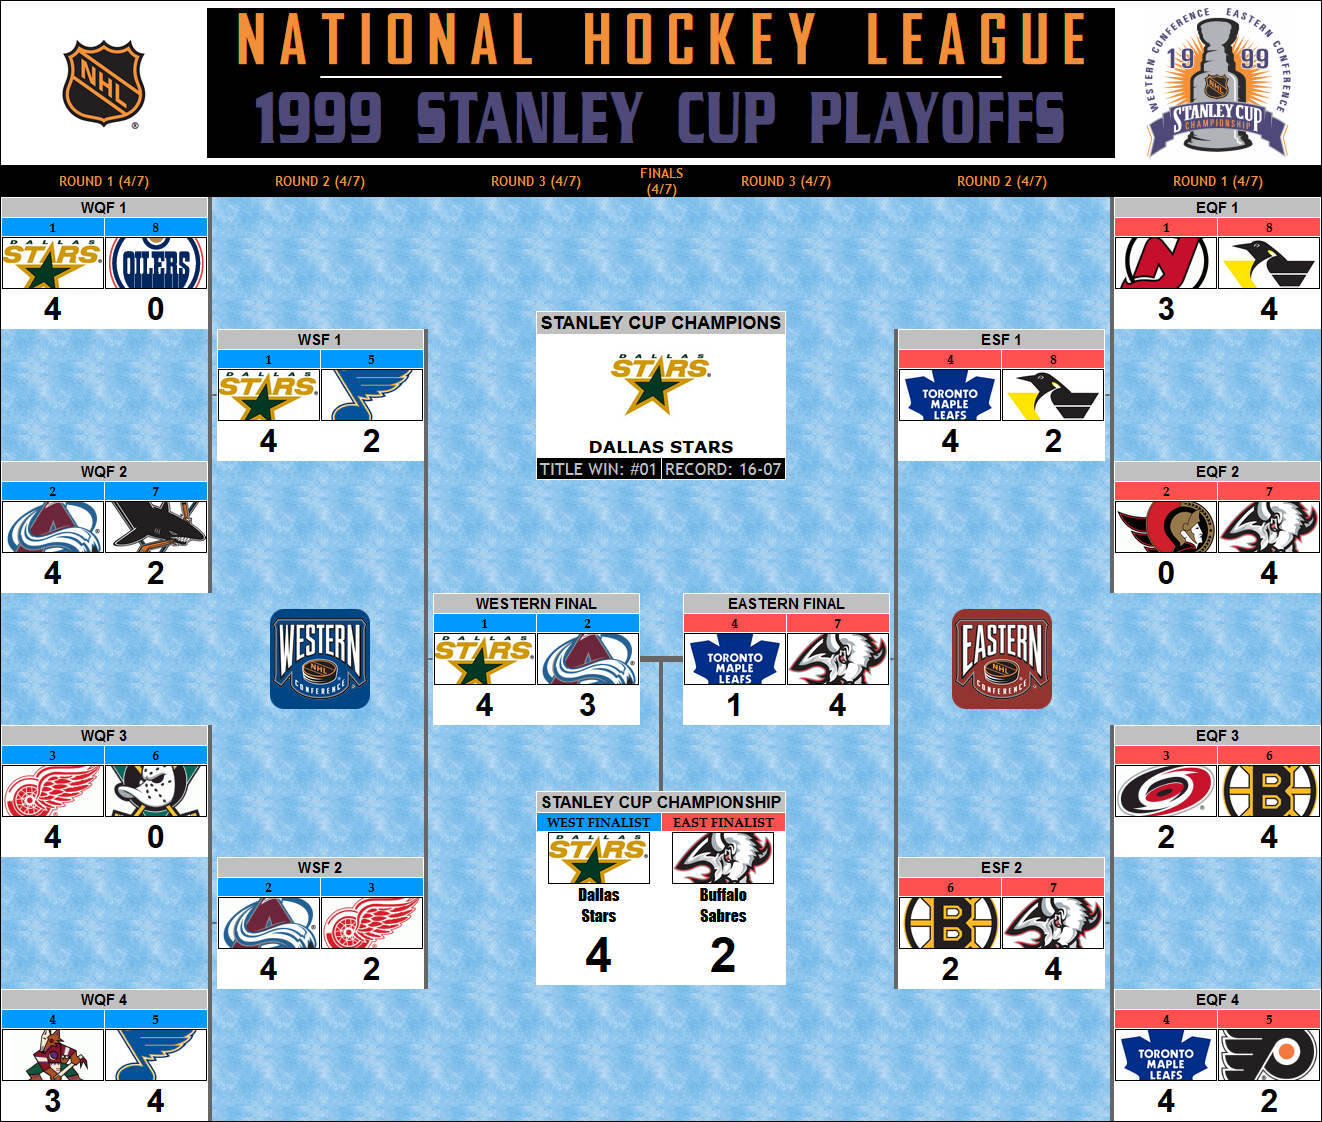 1999 Stanley Cup Playoff Bracket Dallas Stars Championship Stanley Cup Playoffs Dallas Stars Stanley Cup Champions